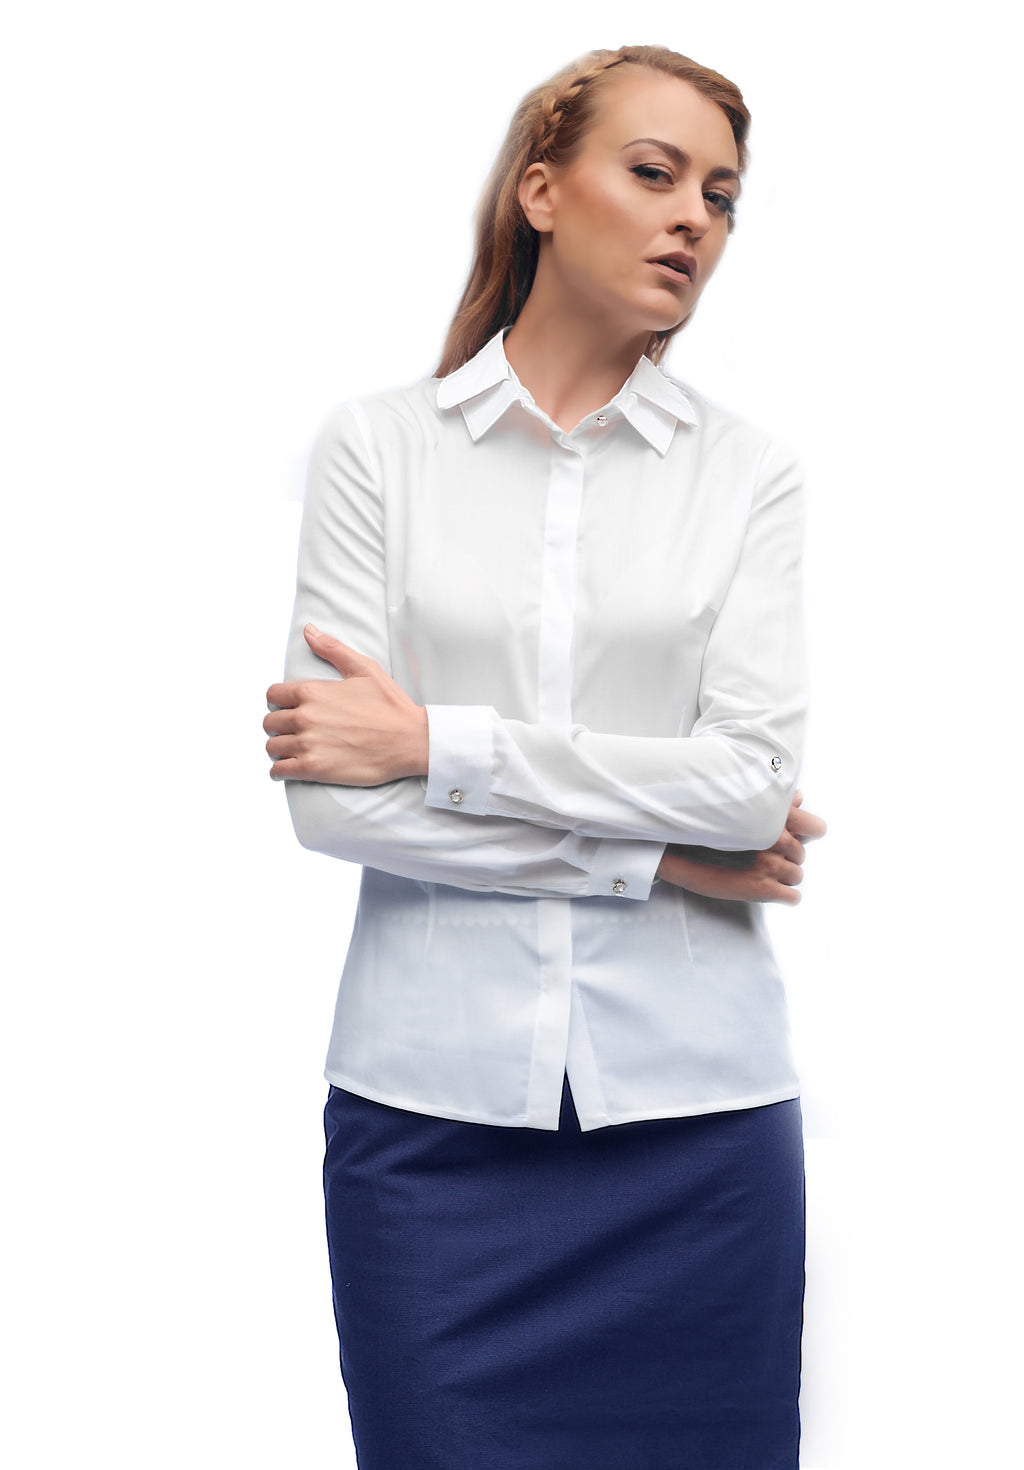 ODER White Bamboo Shirt with Adjustable Sleeves